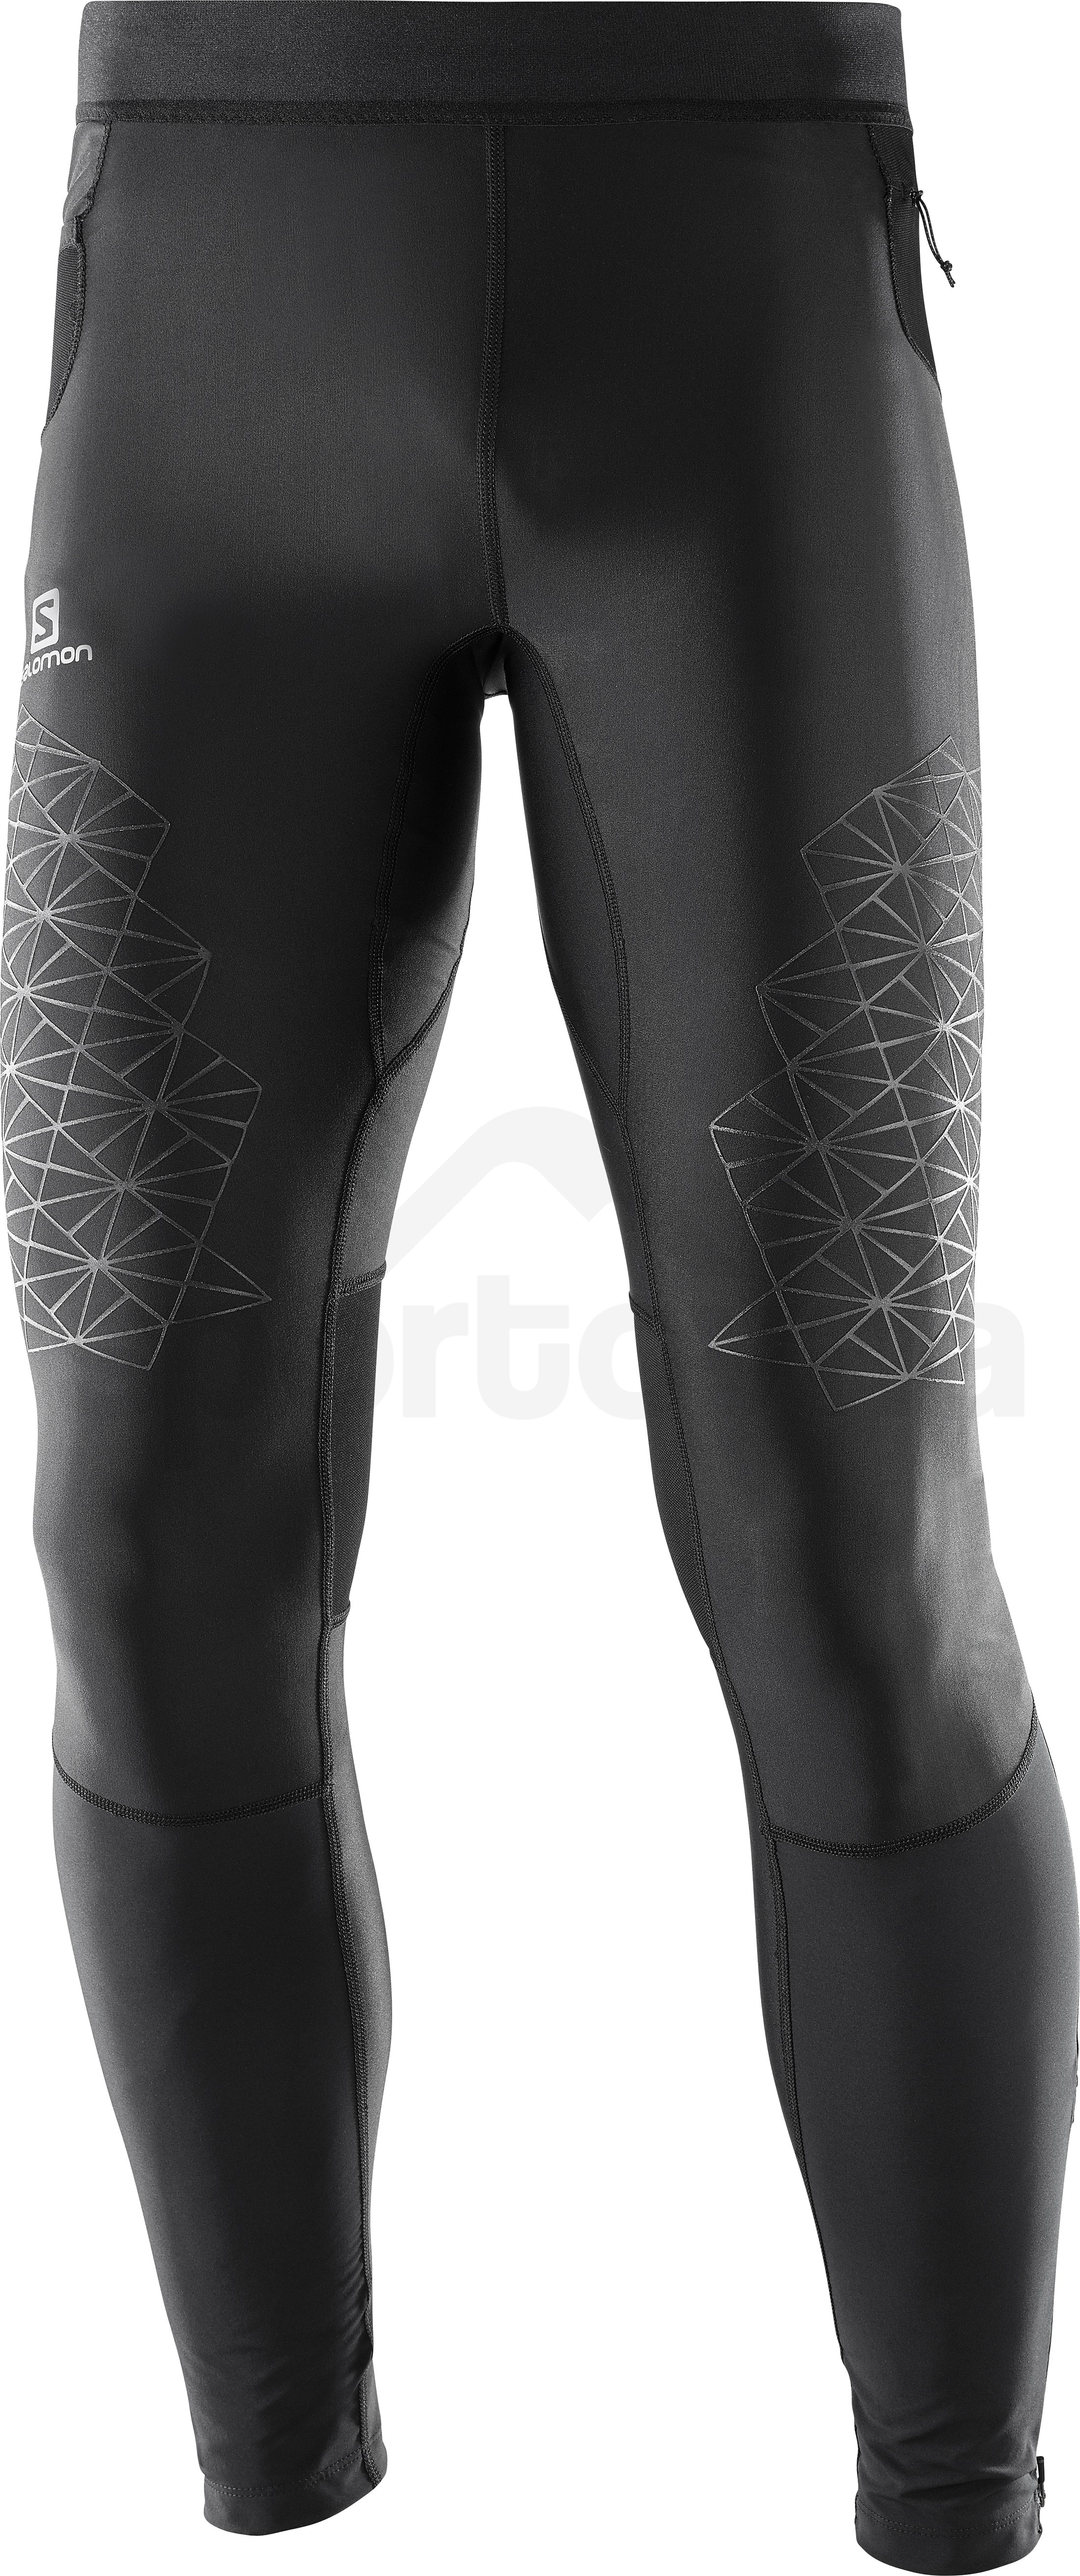 L40068700_0_m_fastwinglongtight_black_running.jpg.originalg